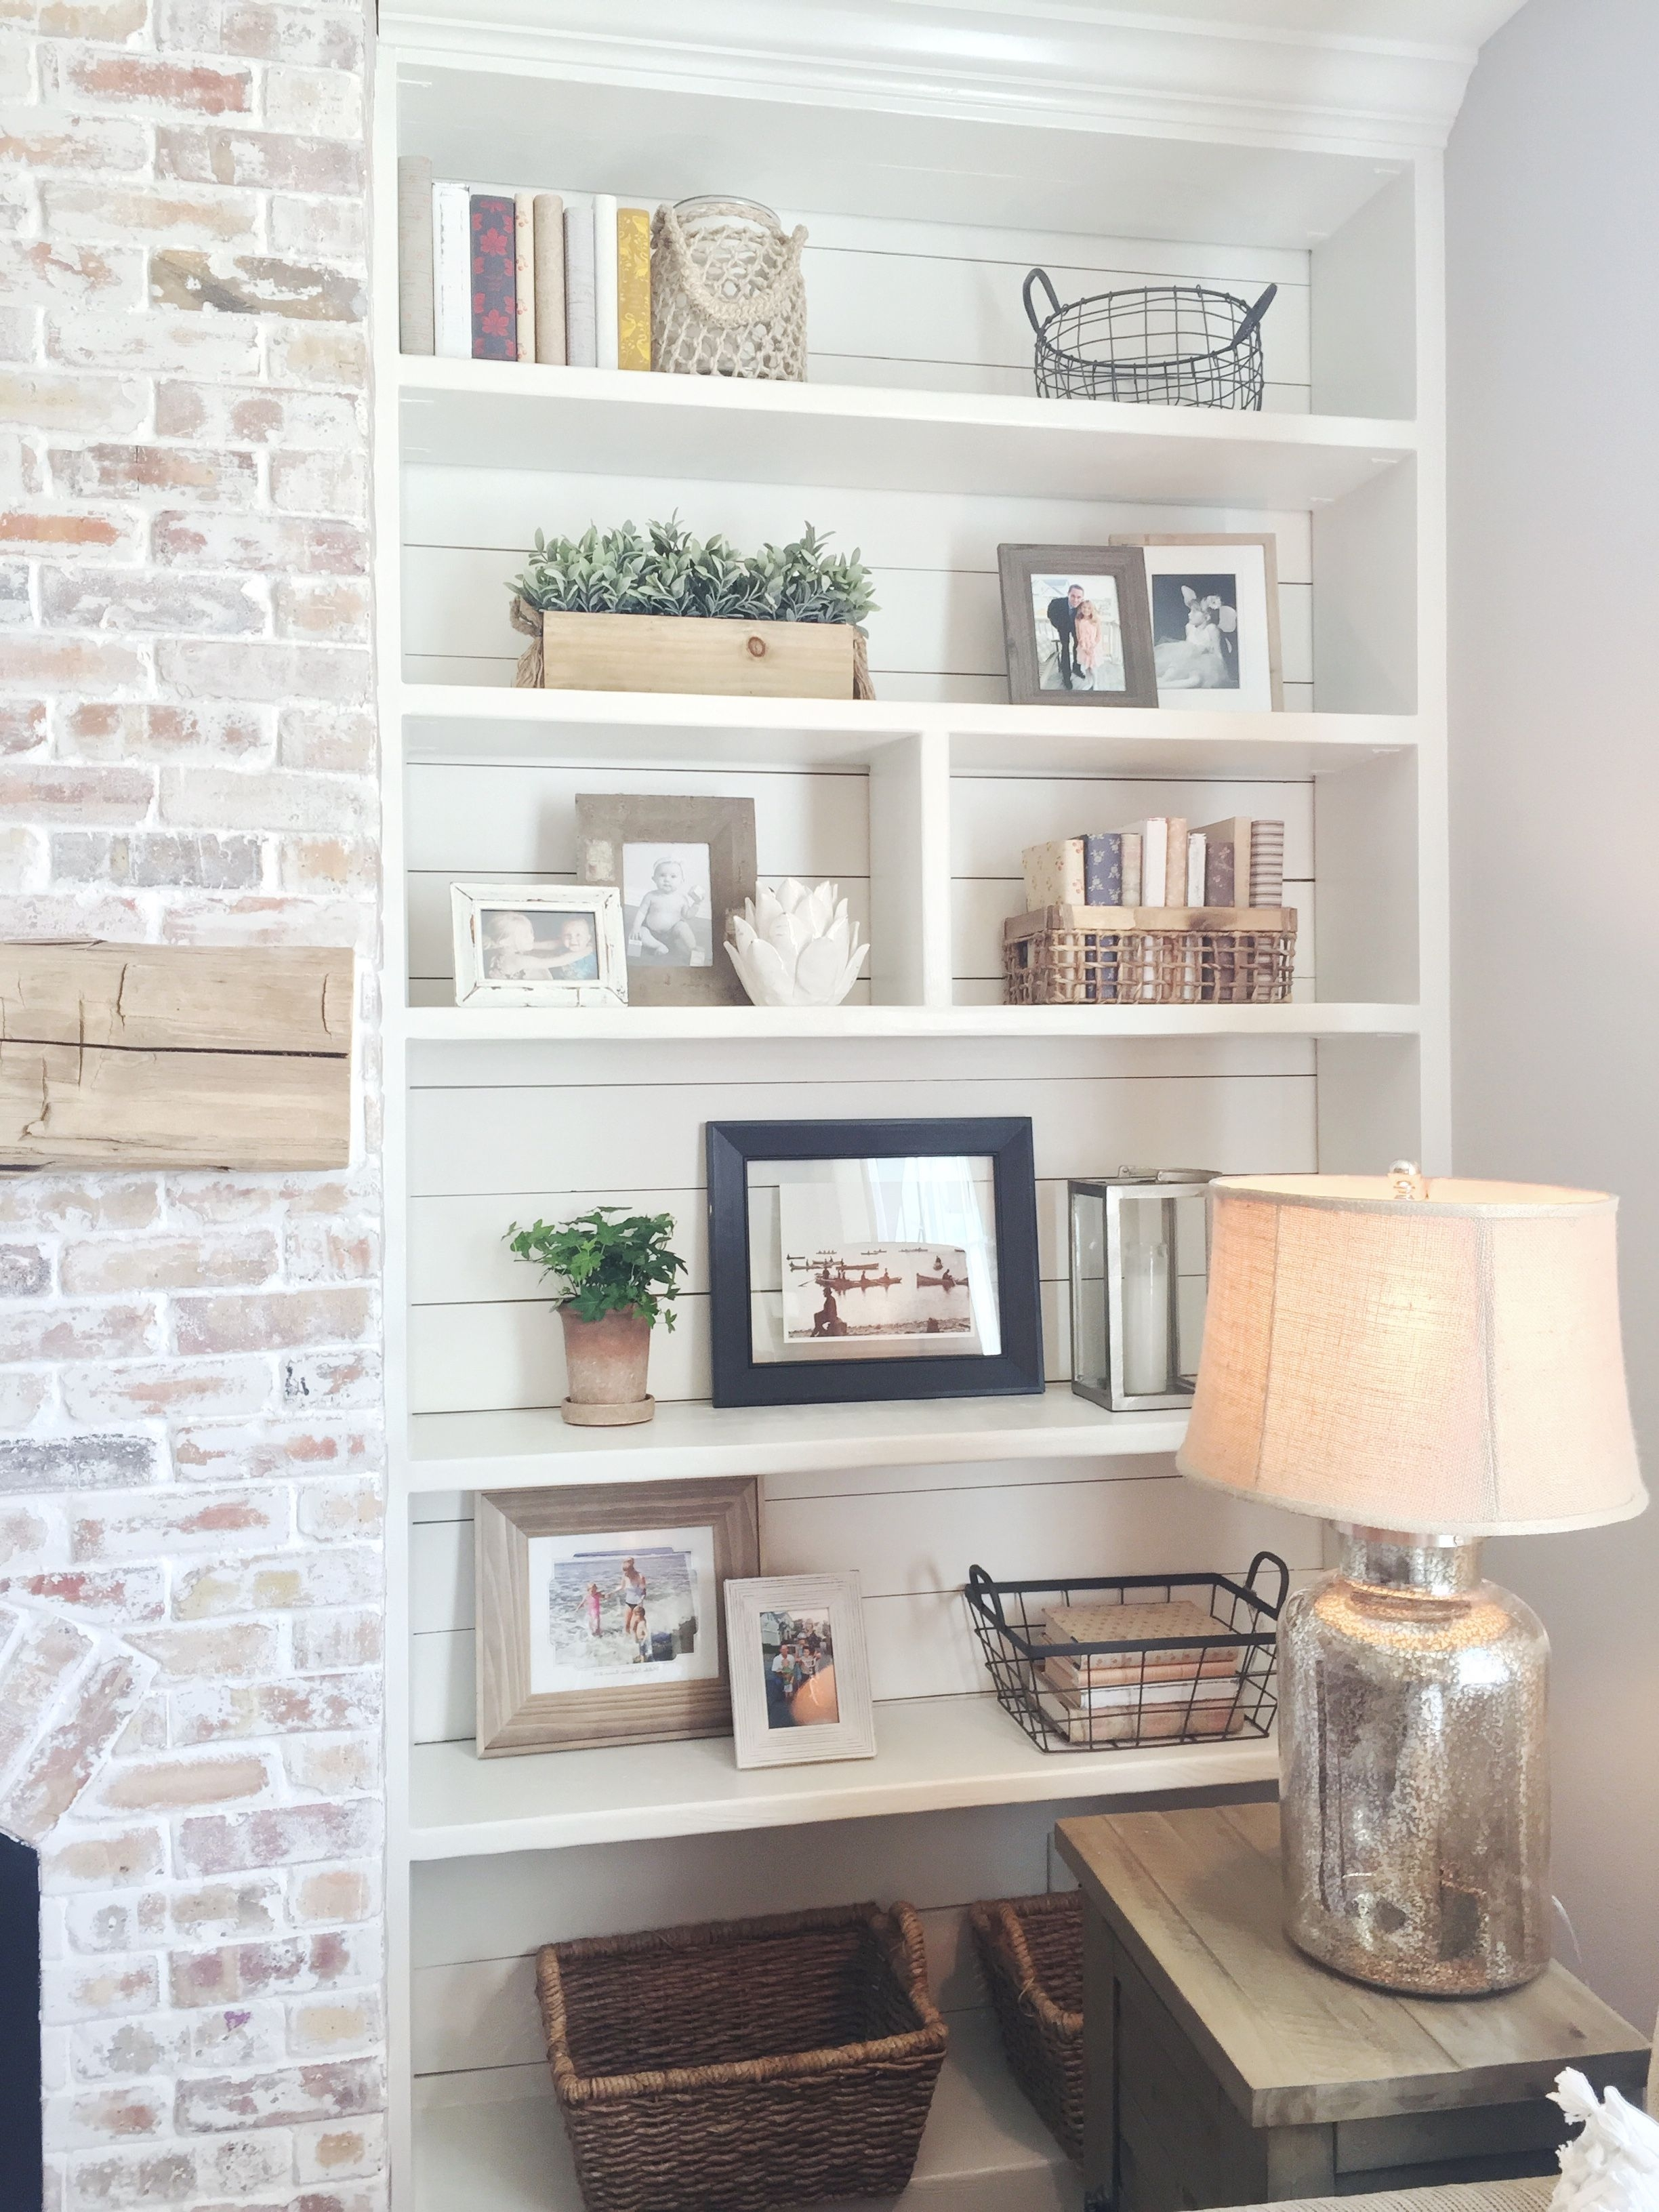 Best And Newest Whitewash Bookcases For Built In Bookshelves, Styling, Shiplap, Whitewash Brick Fireplace (View 1 of 15)